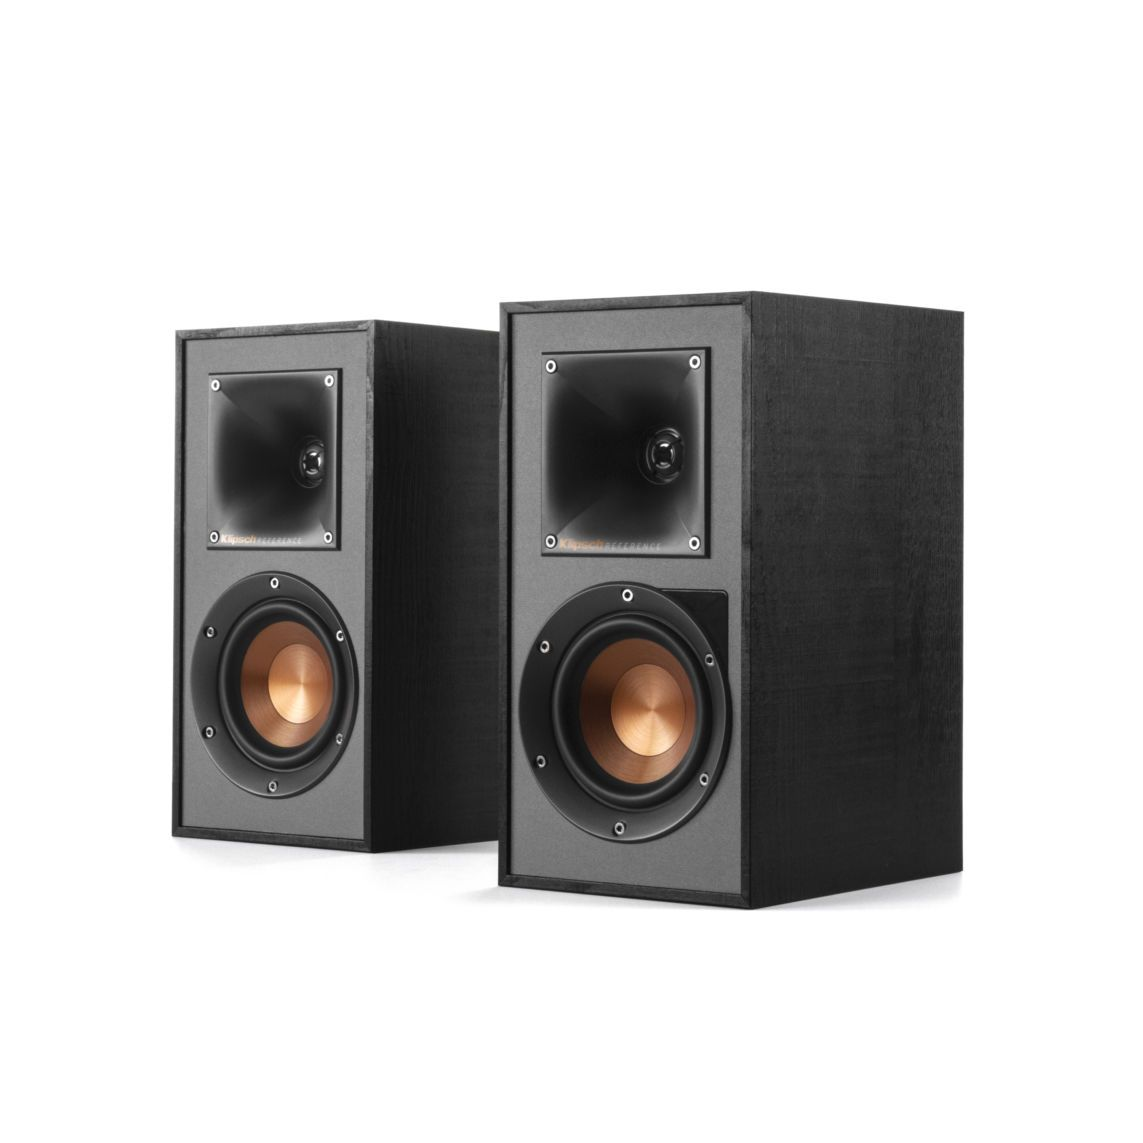 R-41PM Powered Bookshelf Speakers - Klipsch SG